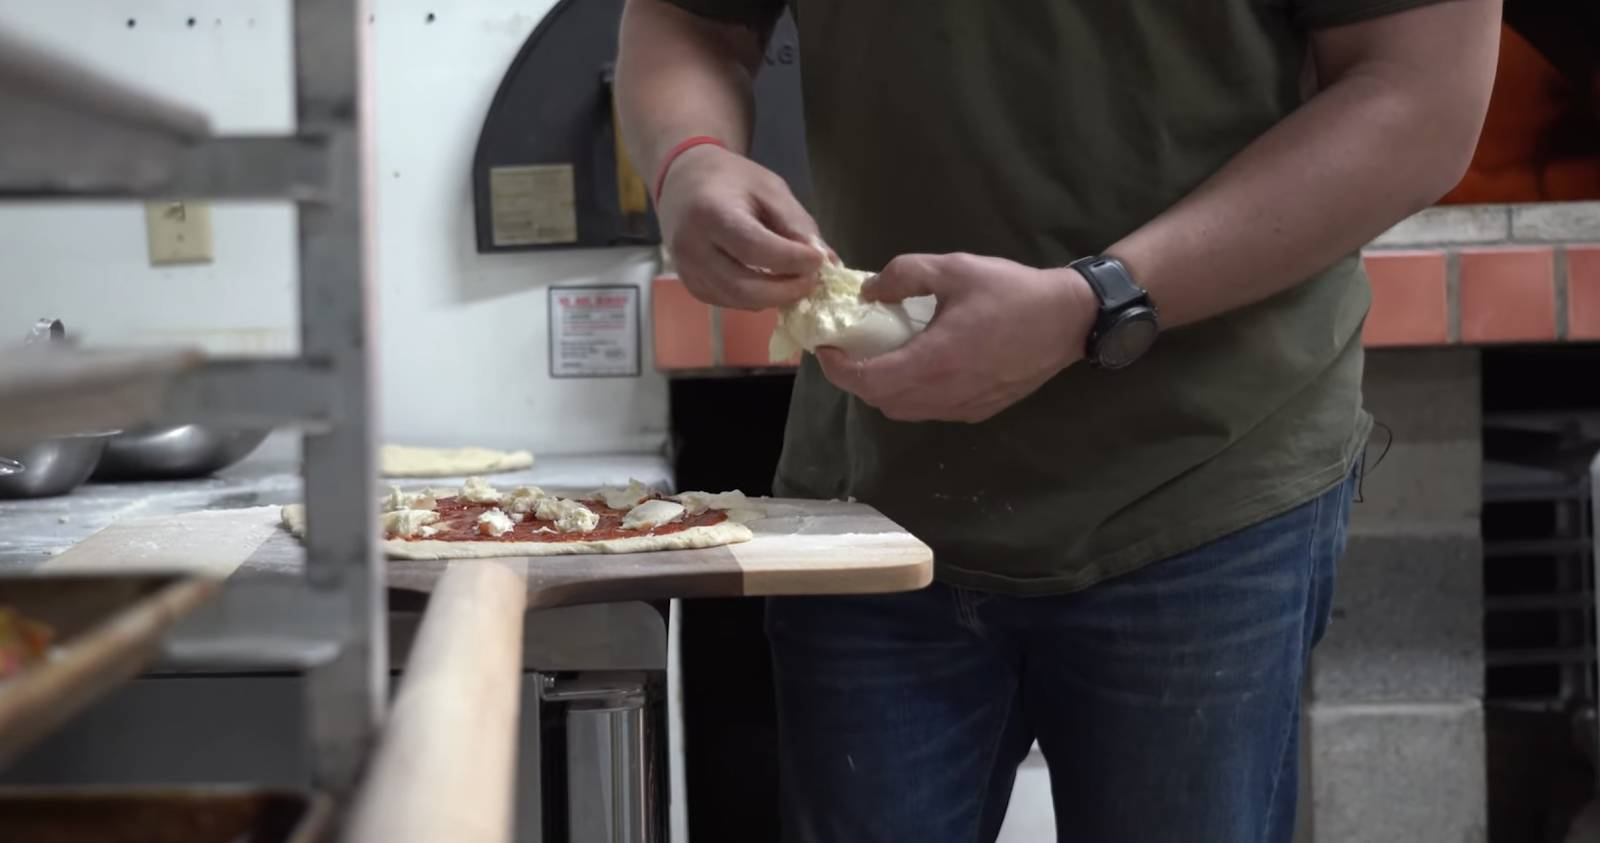 John Malecki makes pizza on a DIY pizza peel